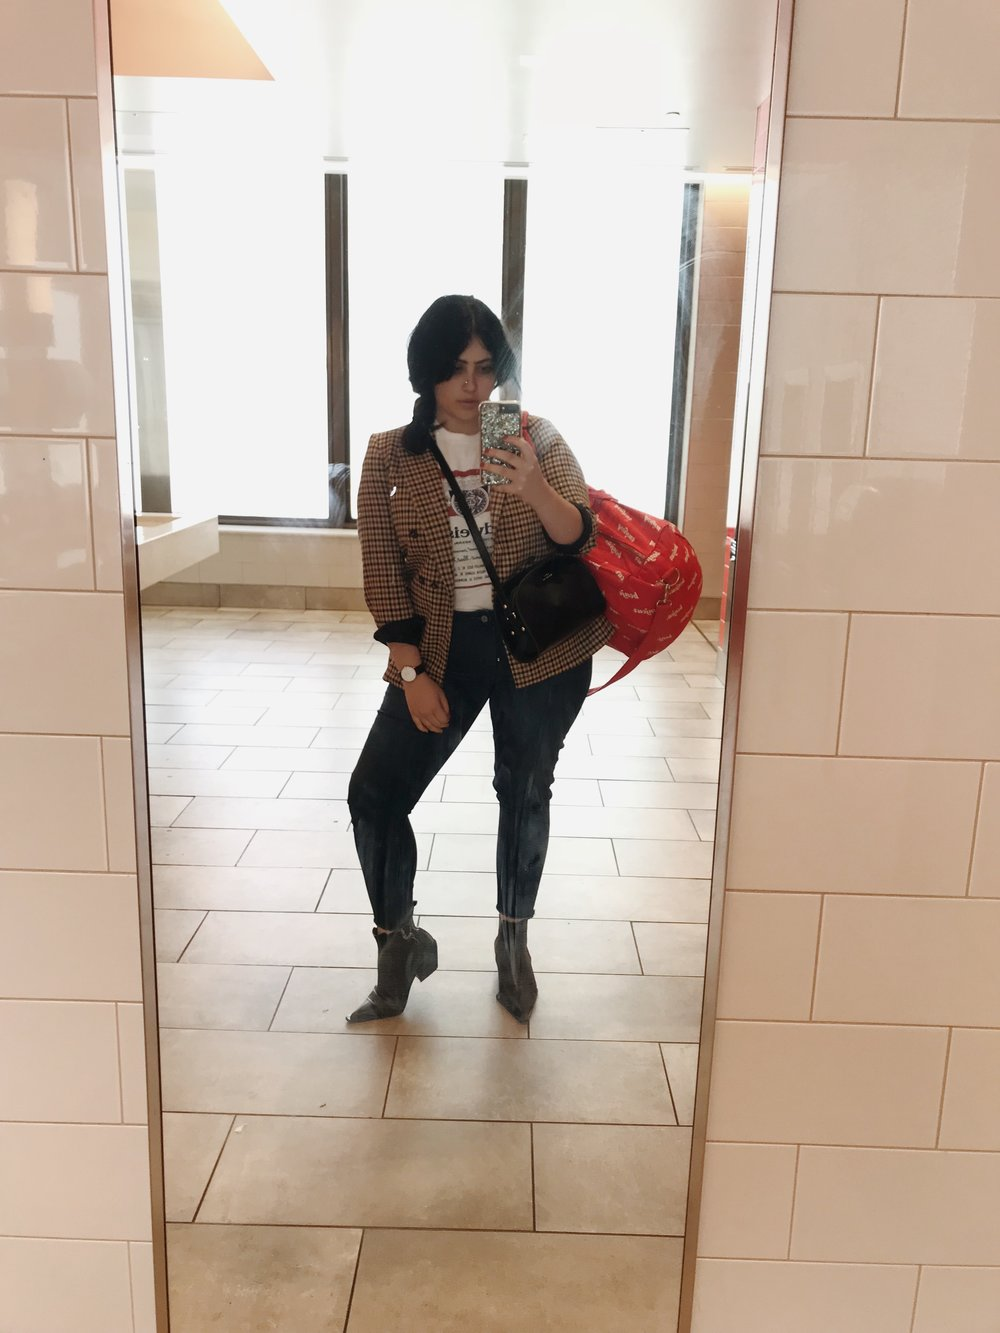 solo-travel-airport-outfit.jpg